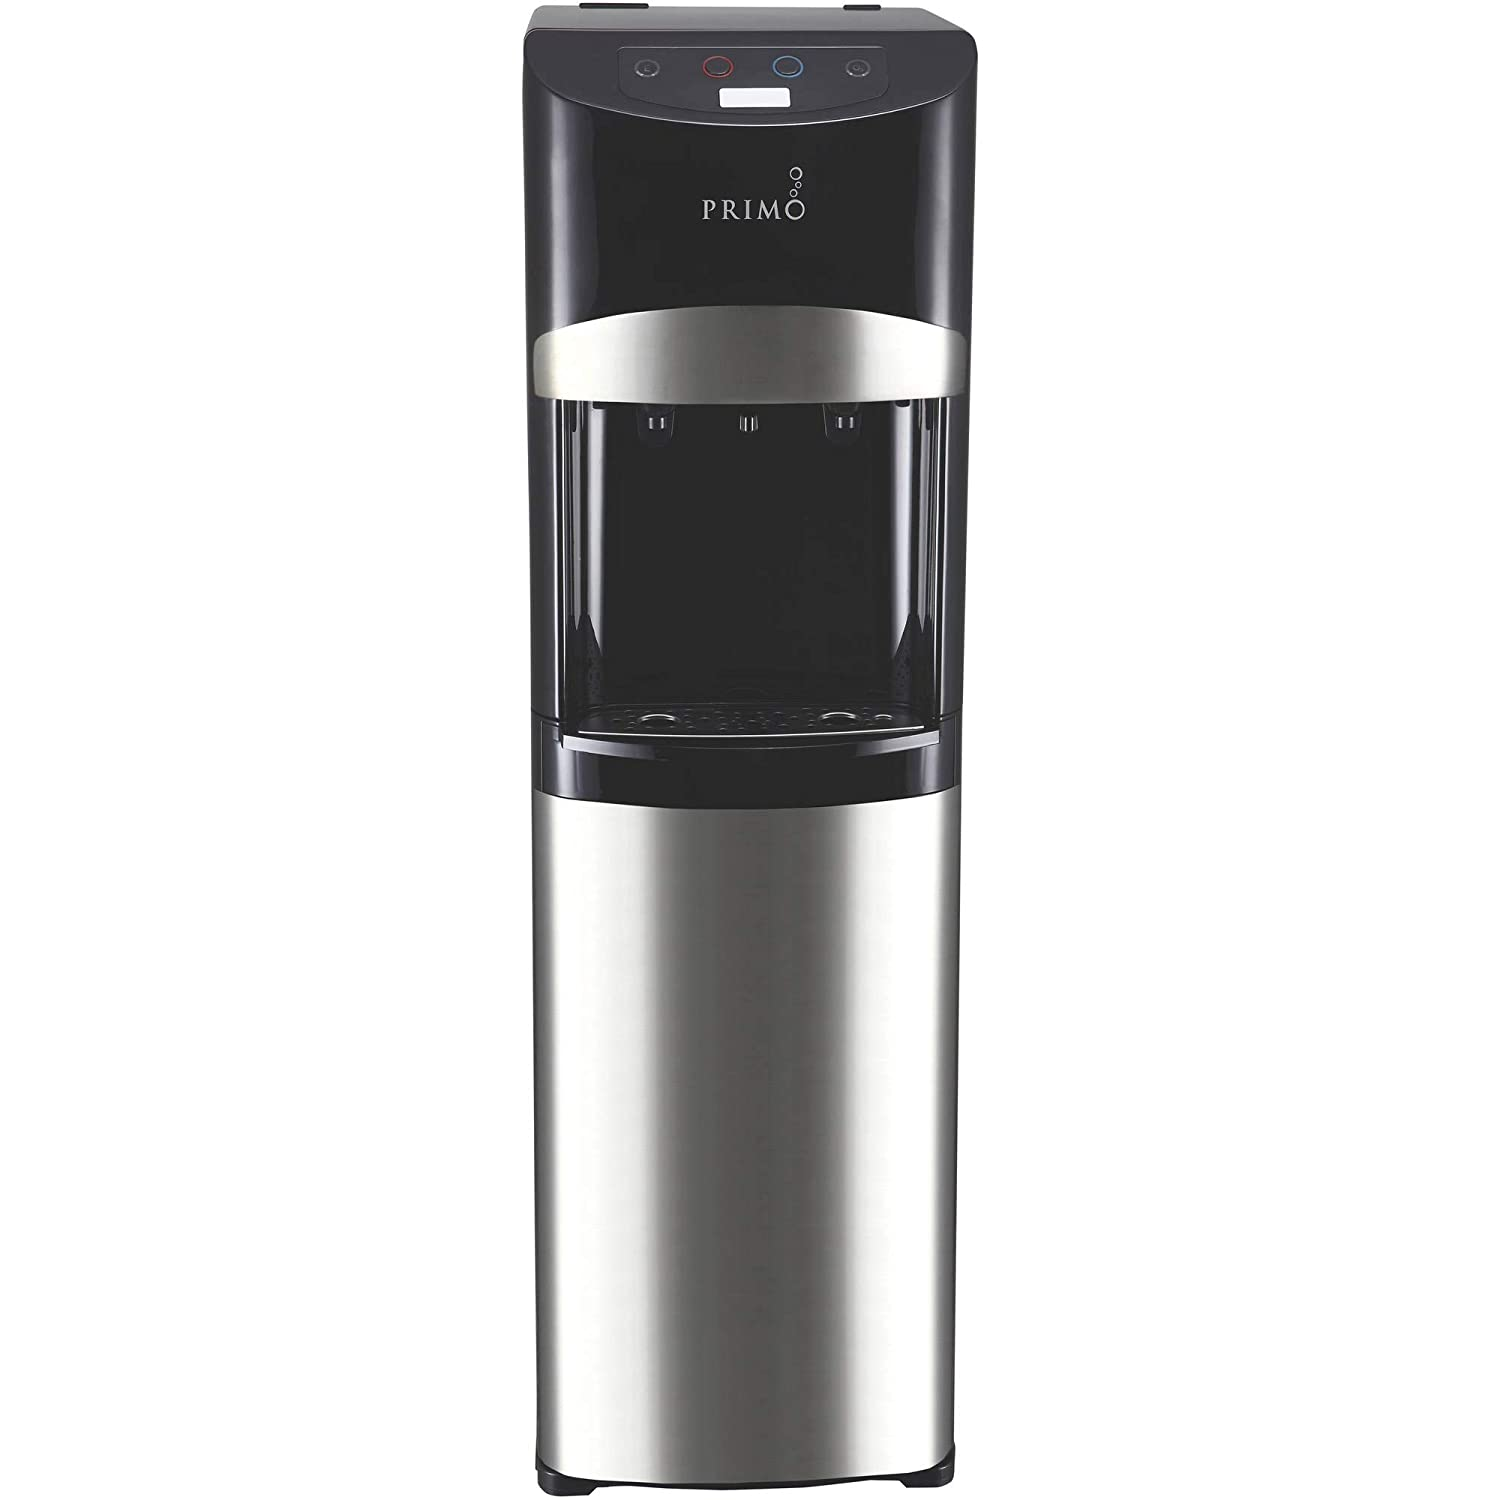 Amazon.com: Primo Water 601234 - Dispensador de agua fría y ...